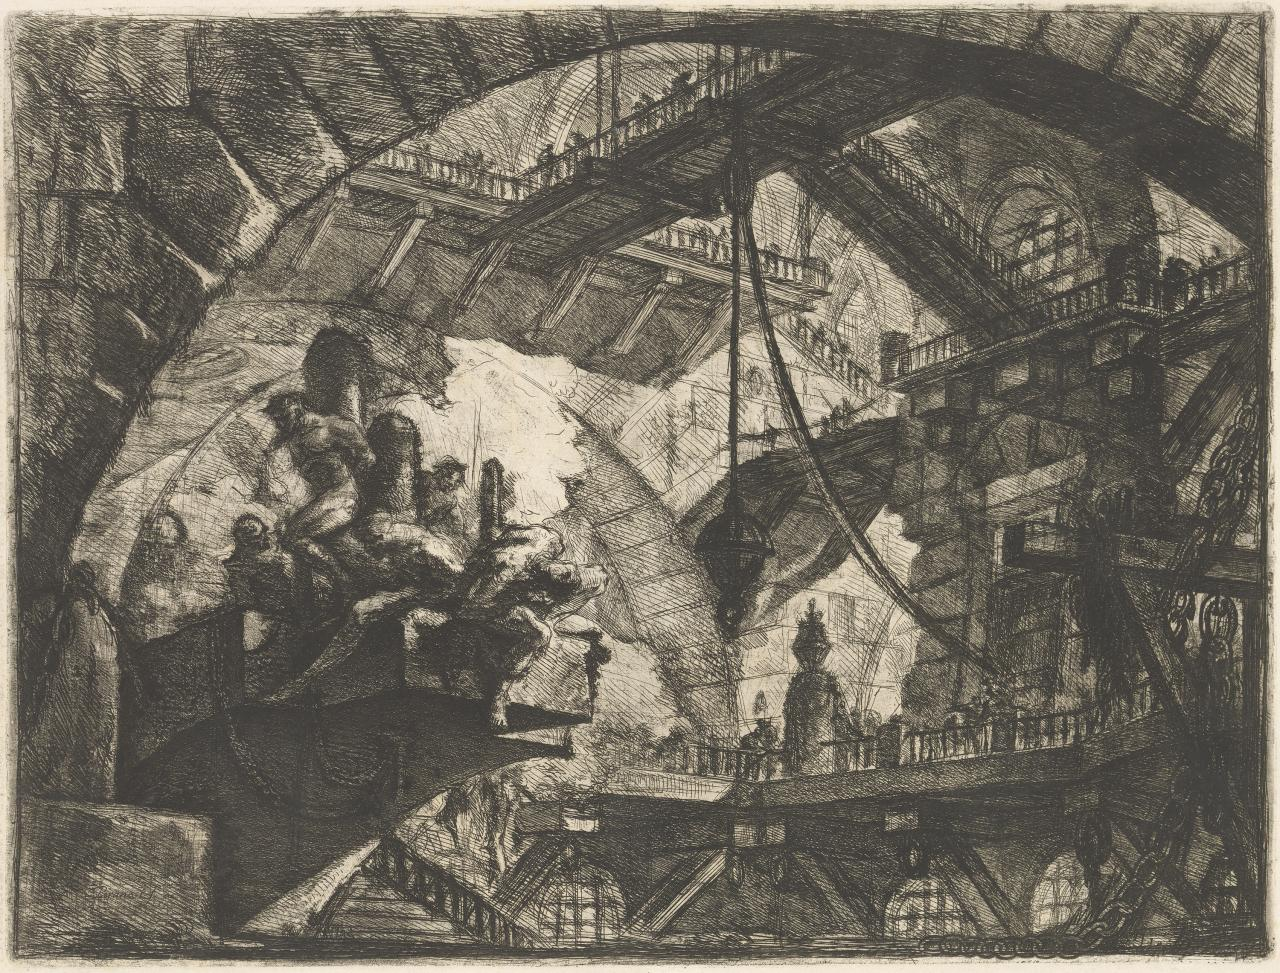 Prisoners on a projecting platform